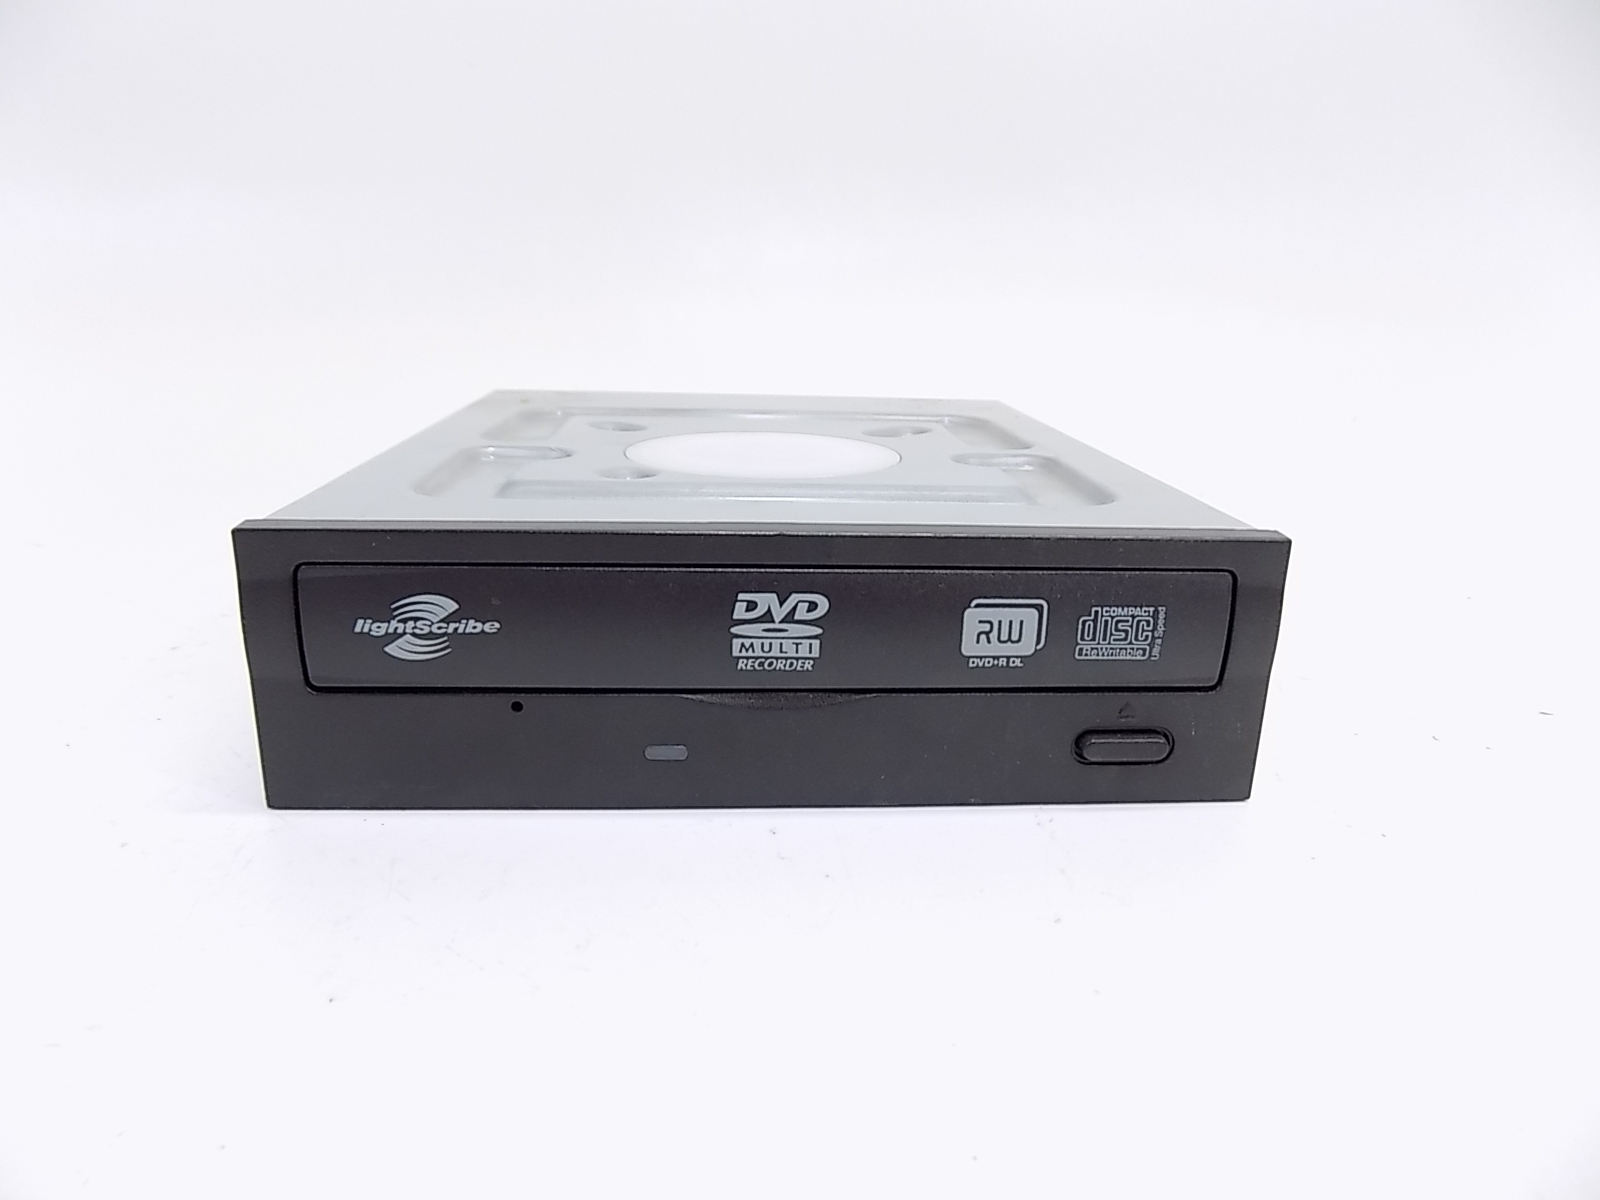 ATAPI DVD A DH16A6L-C SCSI CDROM DEVICE DRIVERS FOR WINDOWS